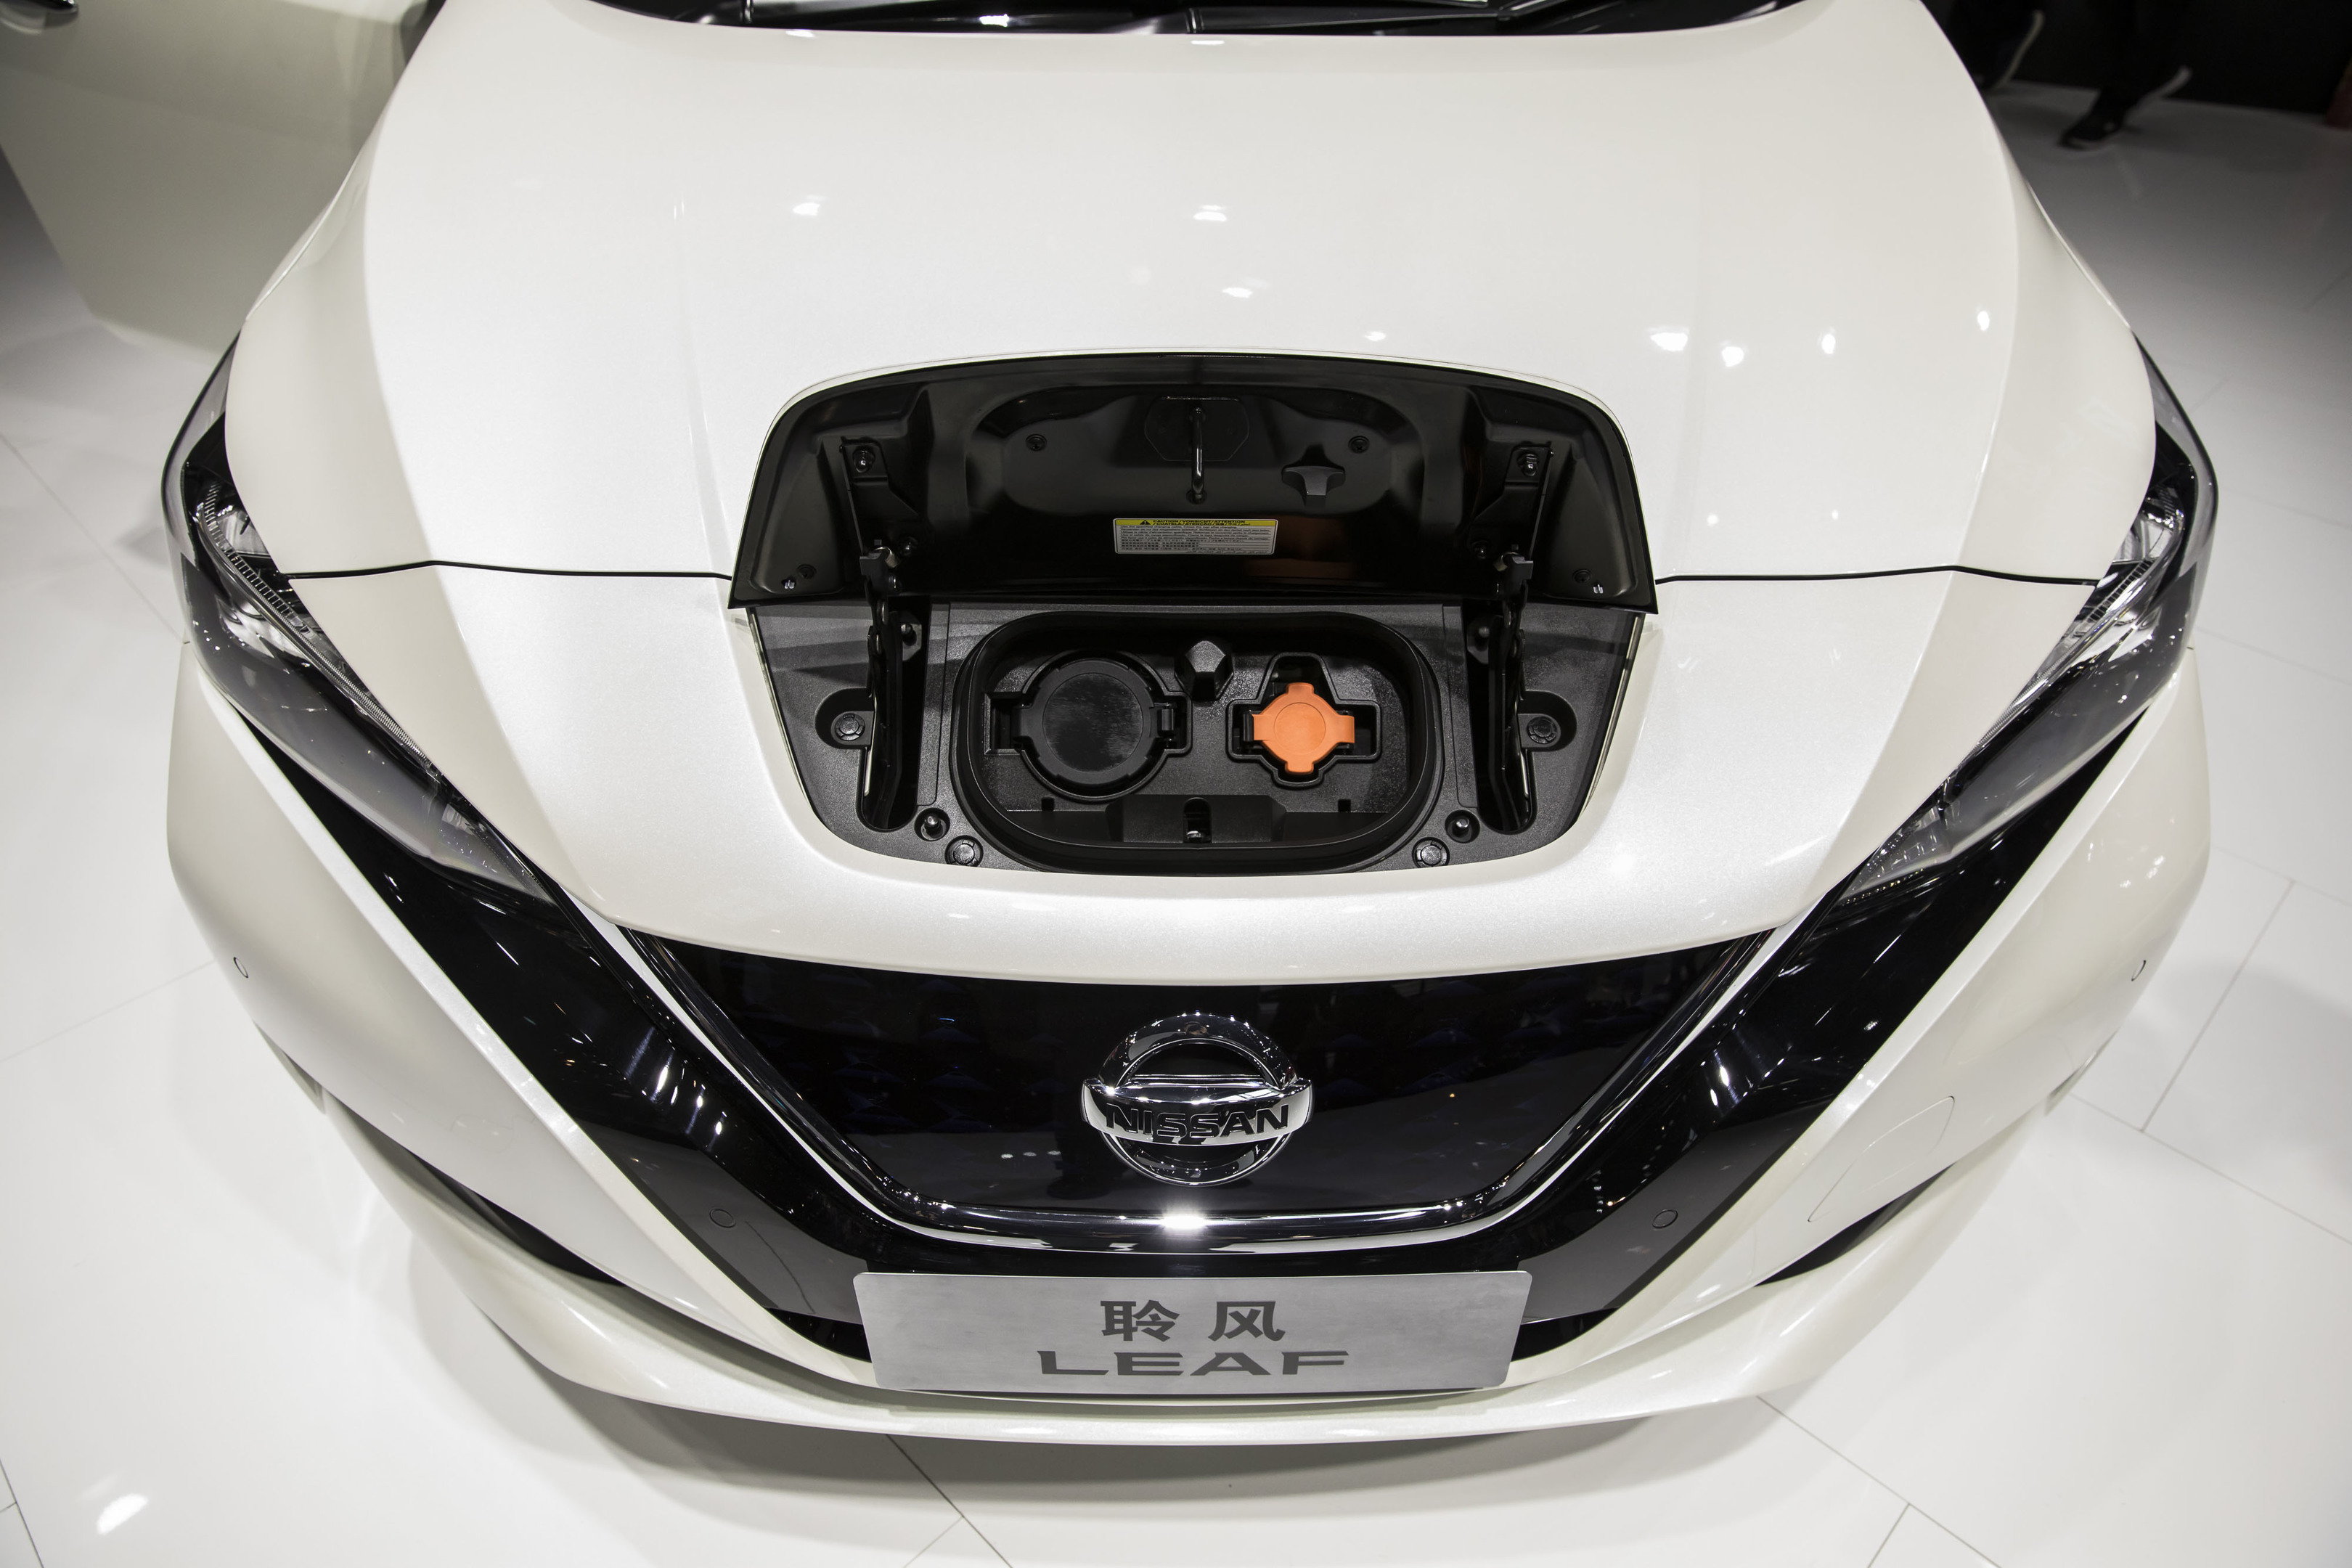 A Nissan Motor Co. Leaf electric vehicle stands on display at the Beijing International Automotive Exhibition in Beijing. Photographer: Qilai Shen/Bloomberg